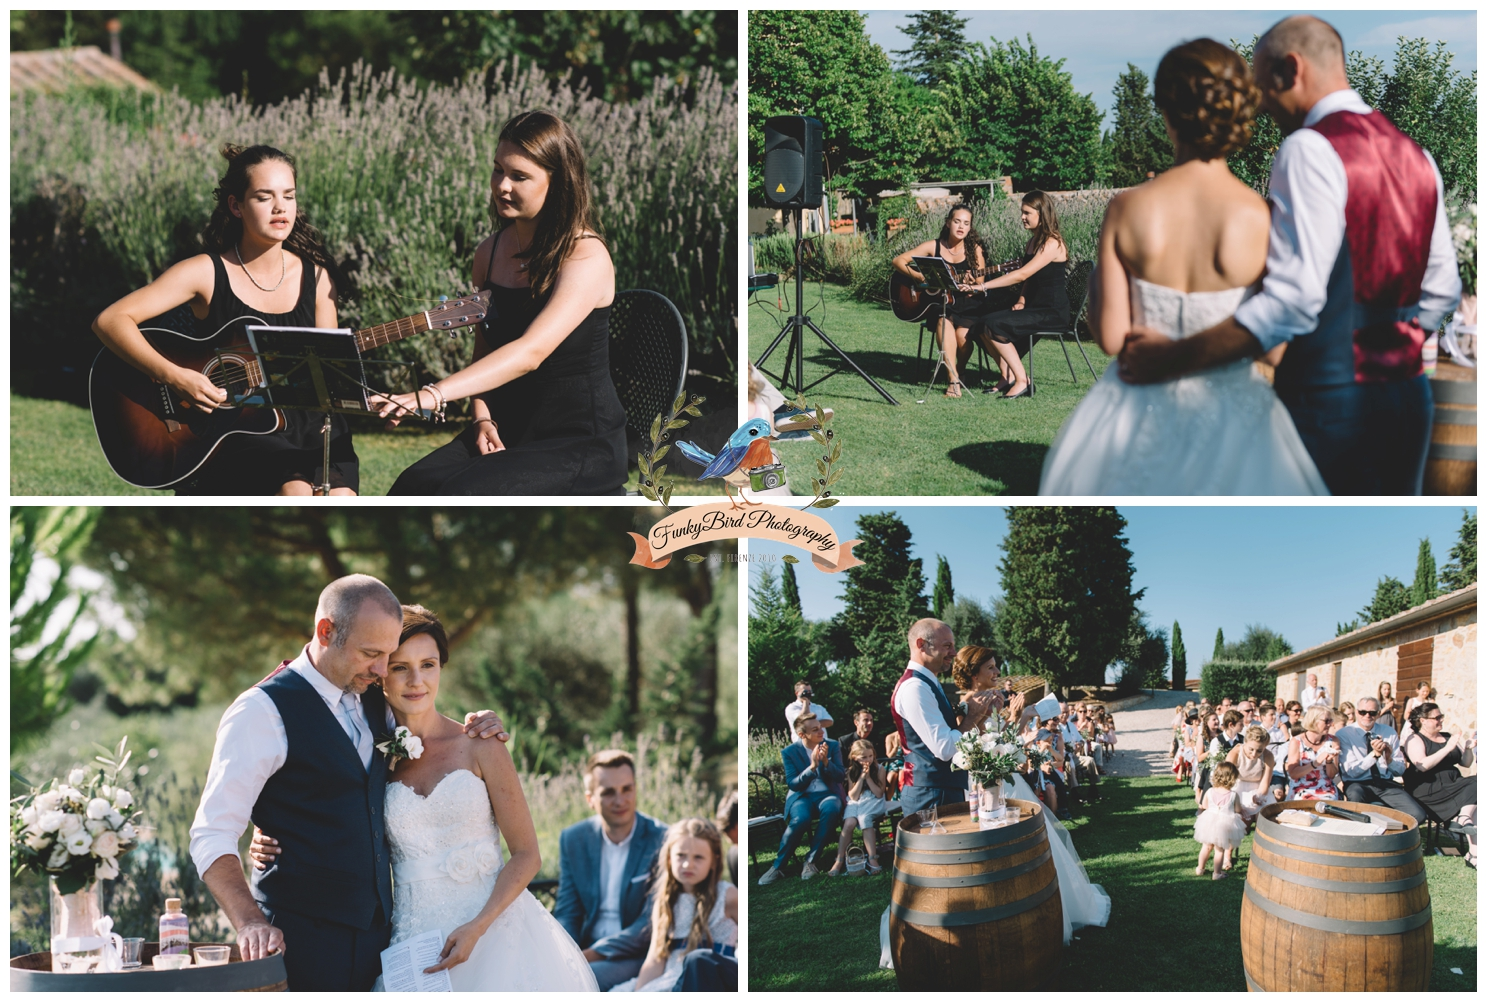 Wedding_Photographer_Tuscany_Italy_0022.jpg